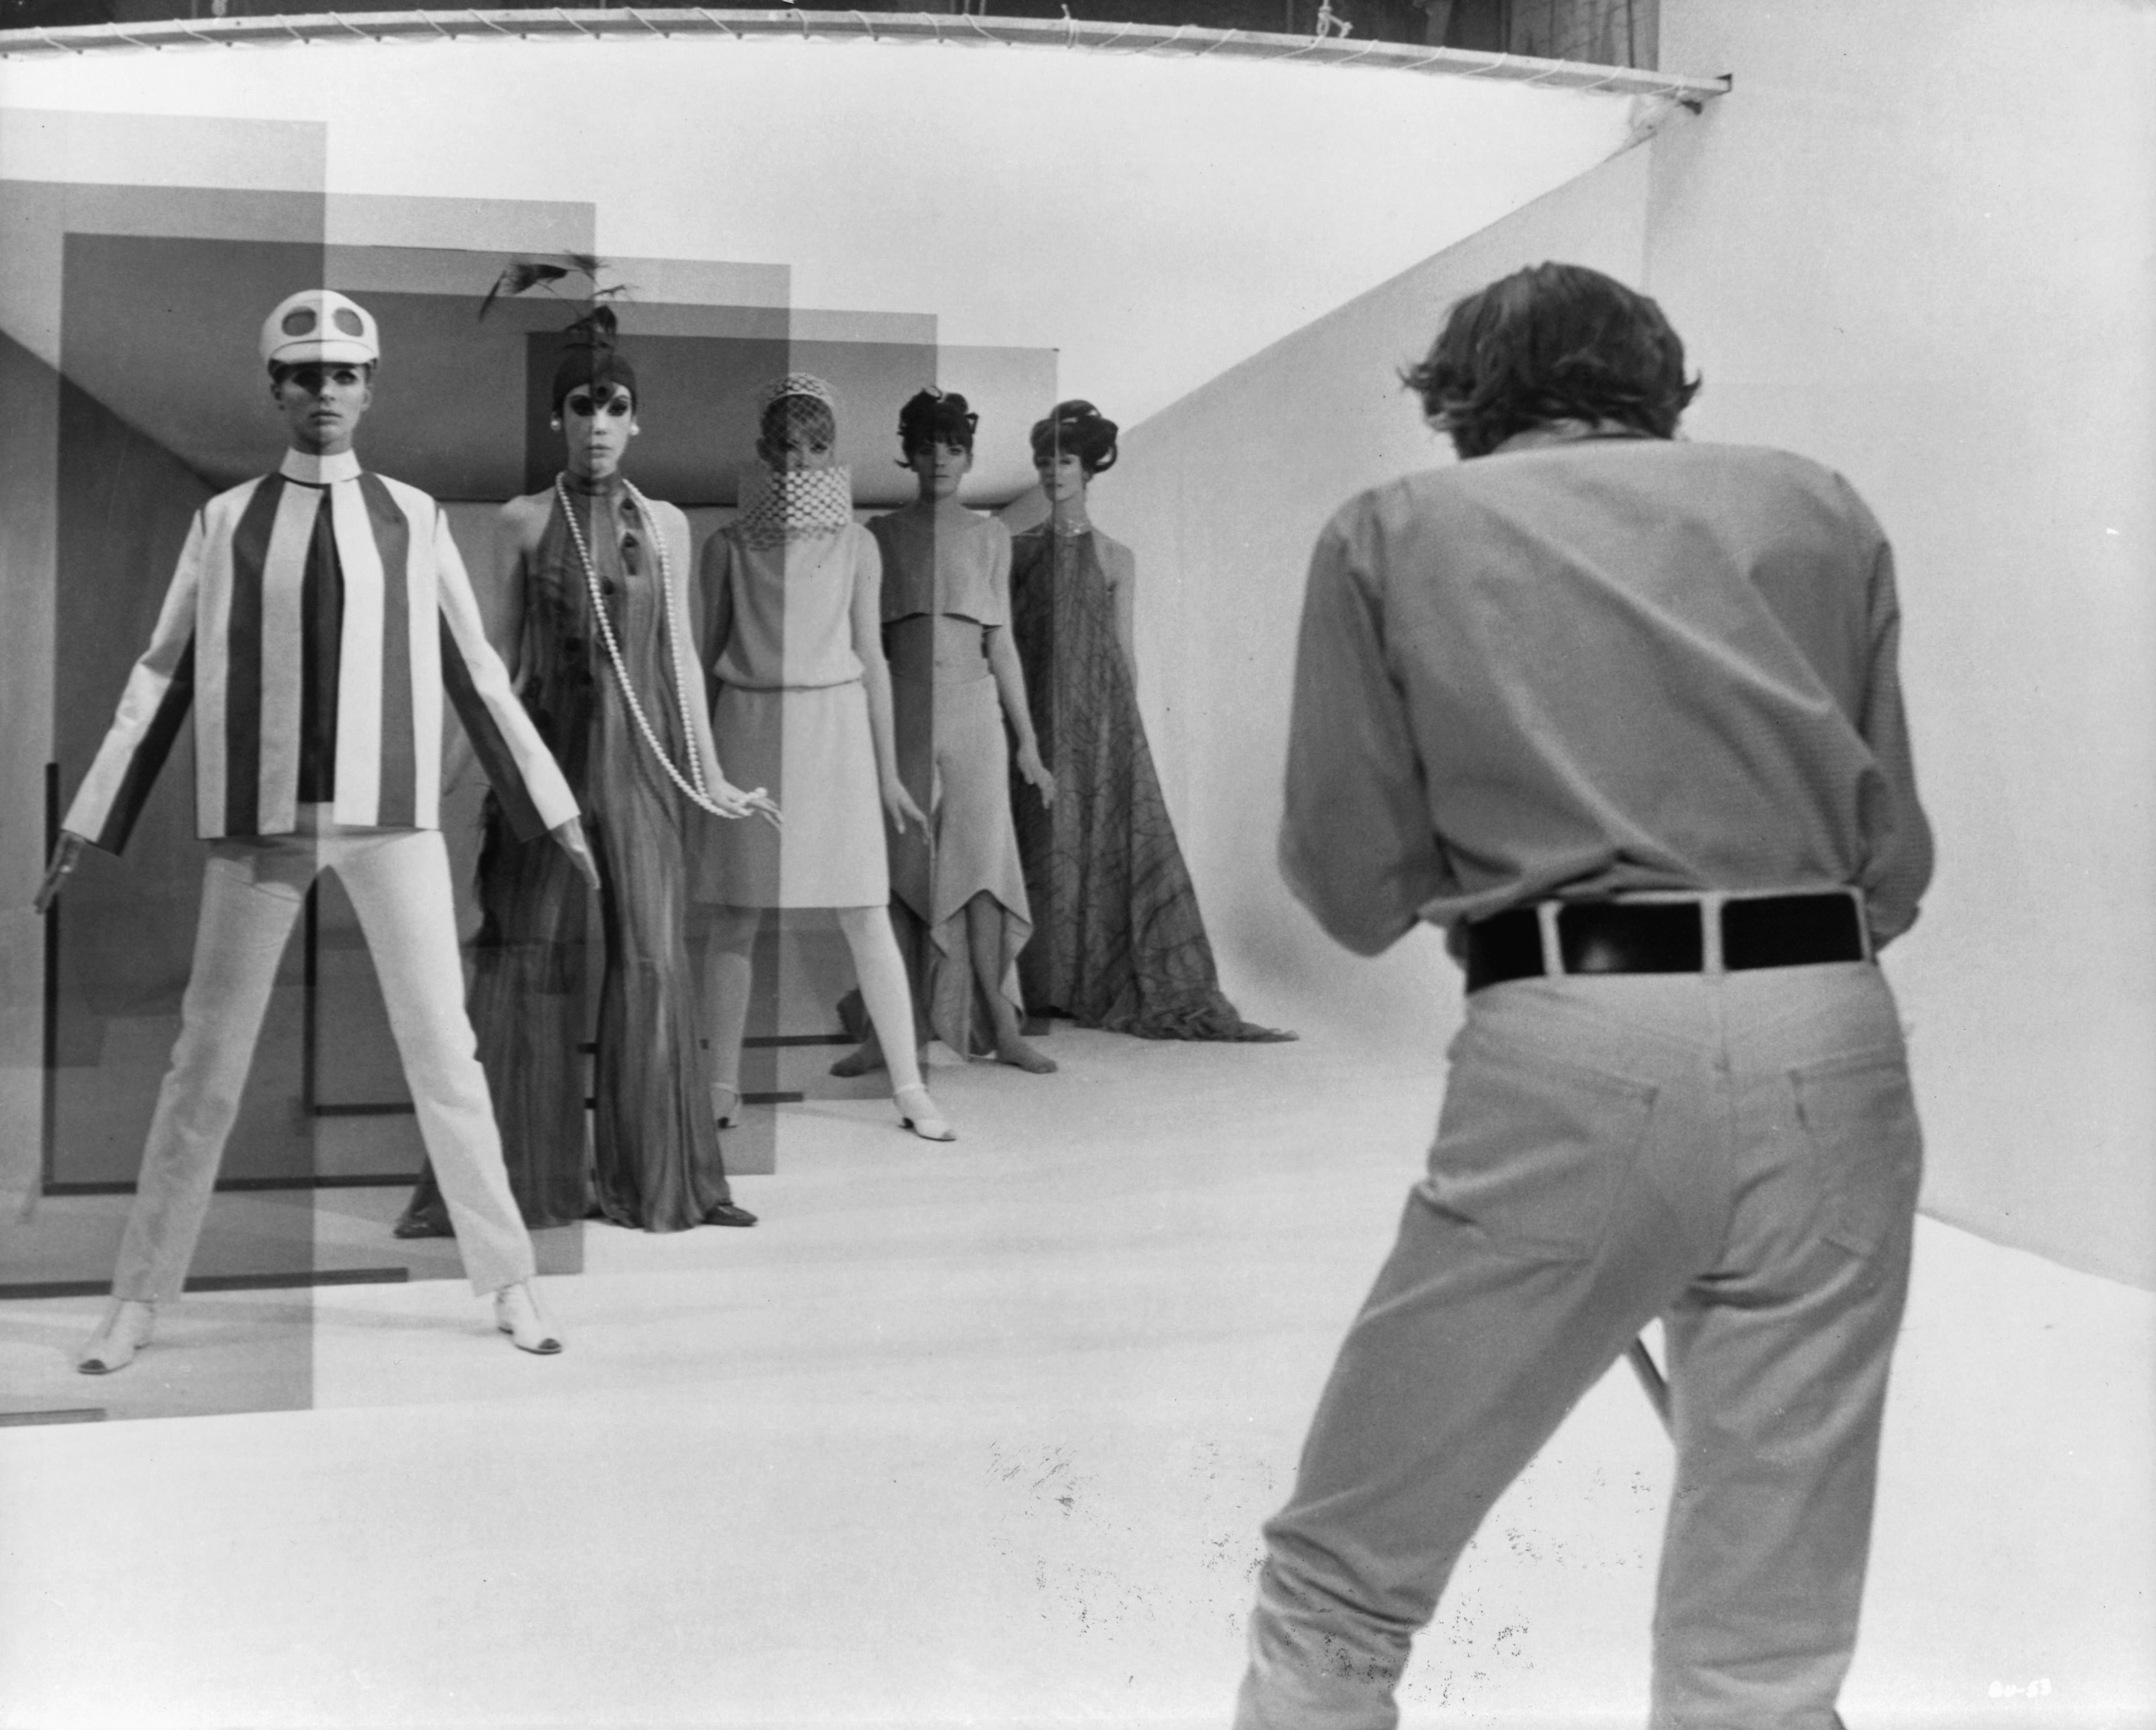 David Hemmings shoots a high fashion session with five models, Jill Kennington, Peggy Moffit, Rosaleen Murray, Ann Norman and